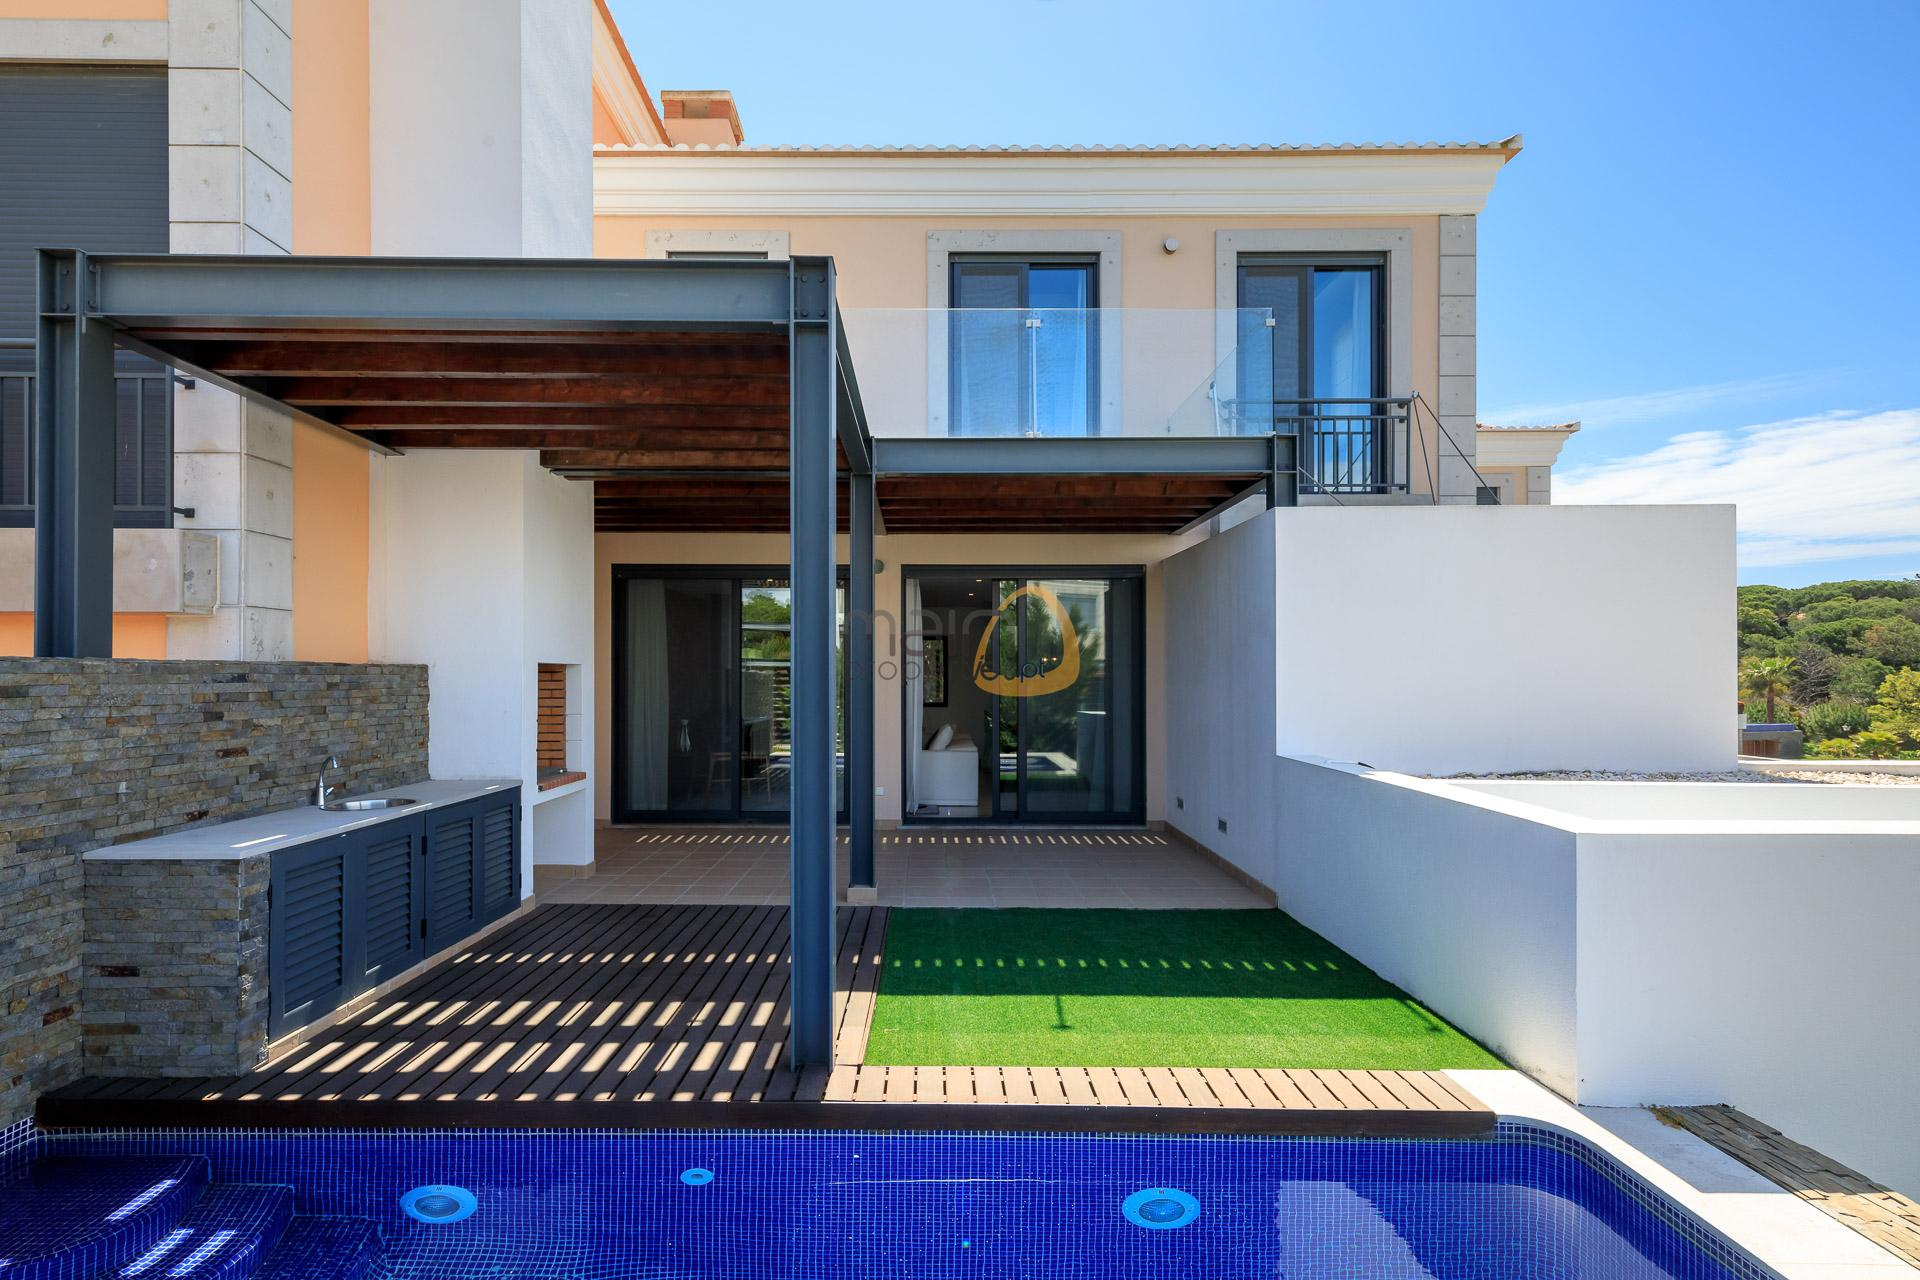 villa-in-vale-do-lobo-algarve-golden-triangle-portugal-property-real-estate-mainproperties-mp138vdl-1